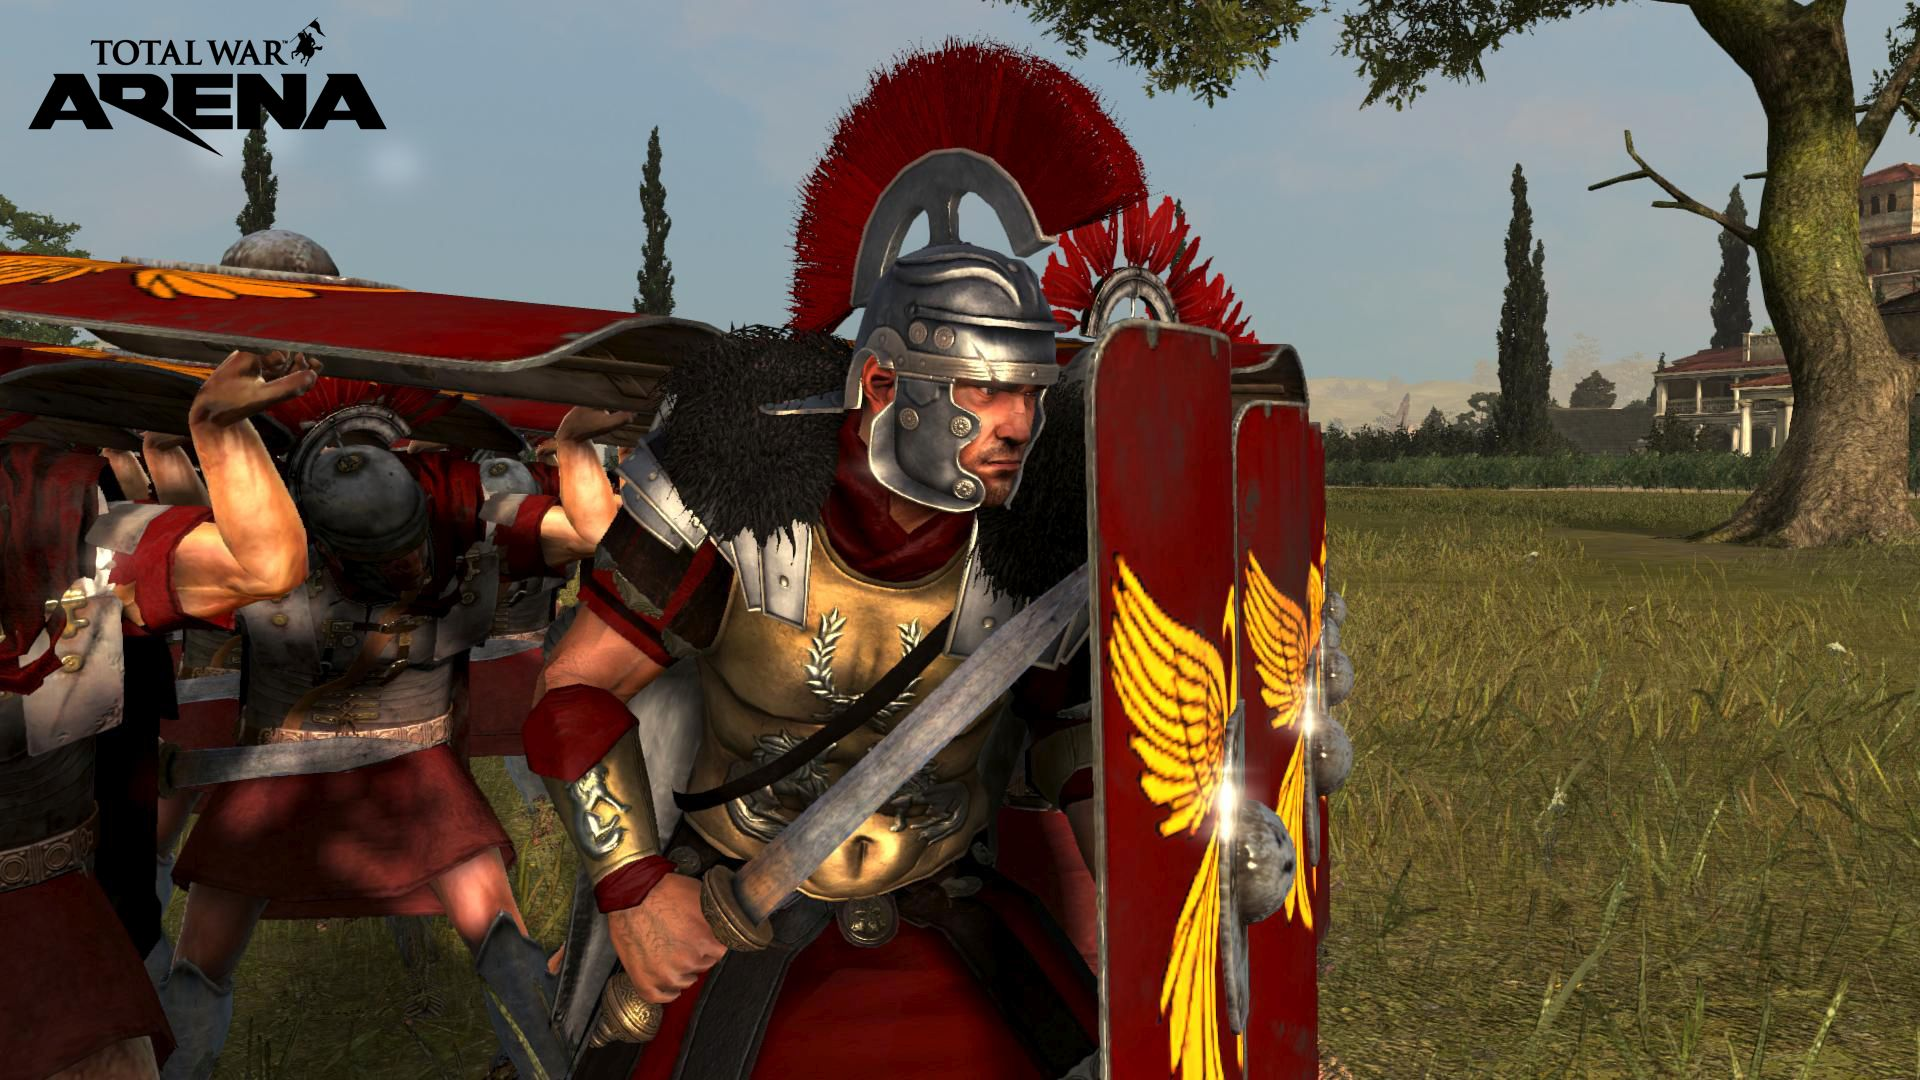 Total War Arena Screens 07